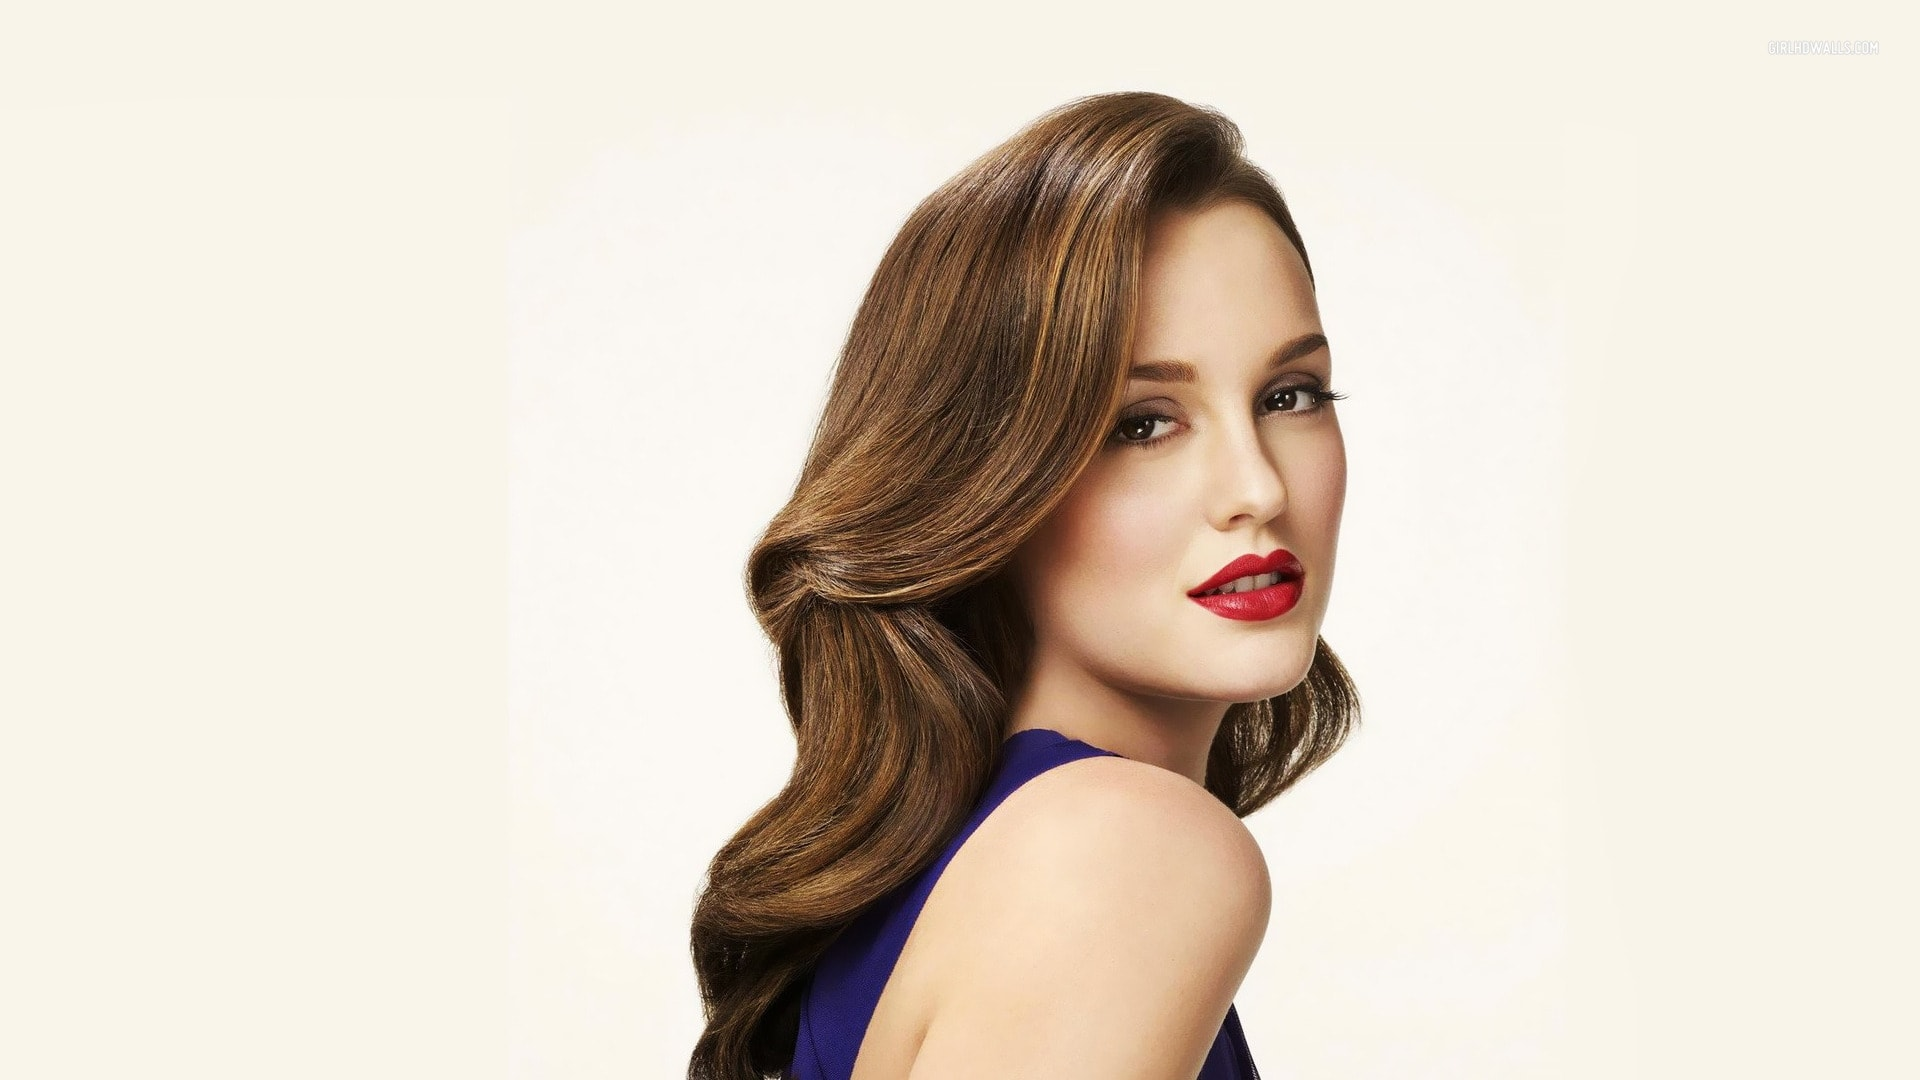 Leighton Meester Full hd wallpapers